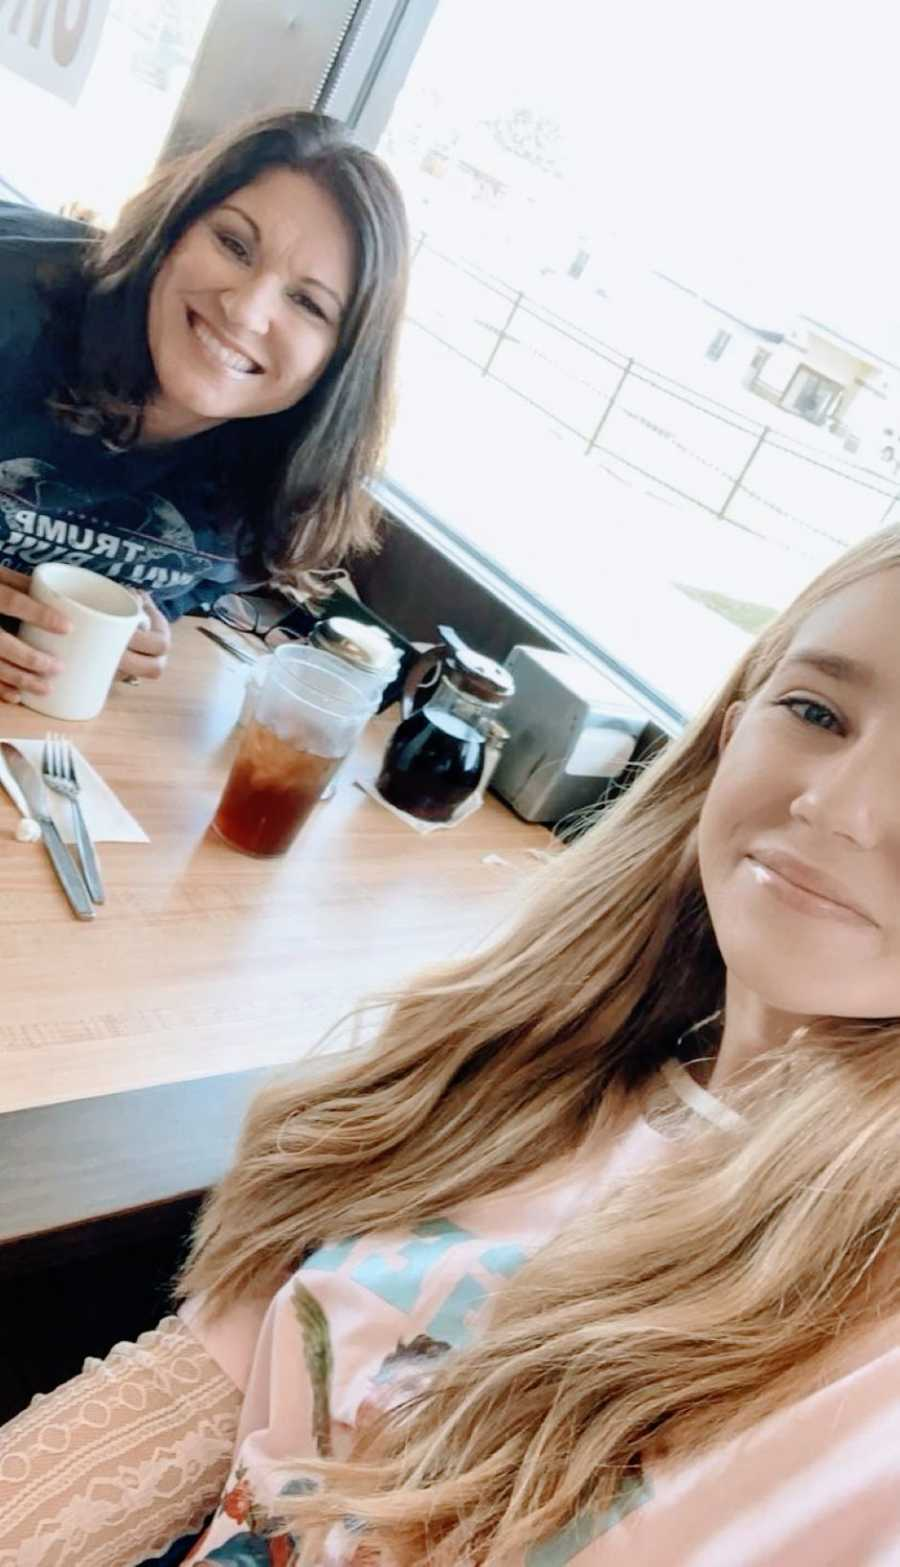 Mom enjoys a nice breakfast out with her daughter